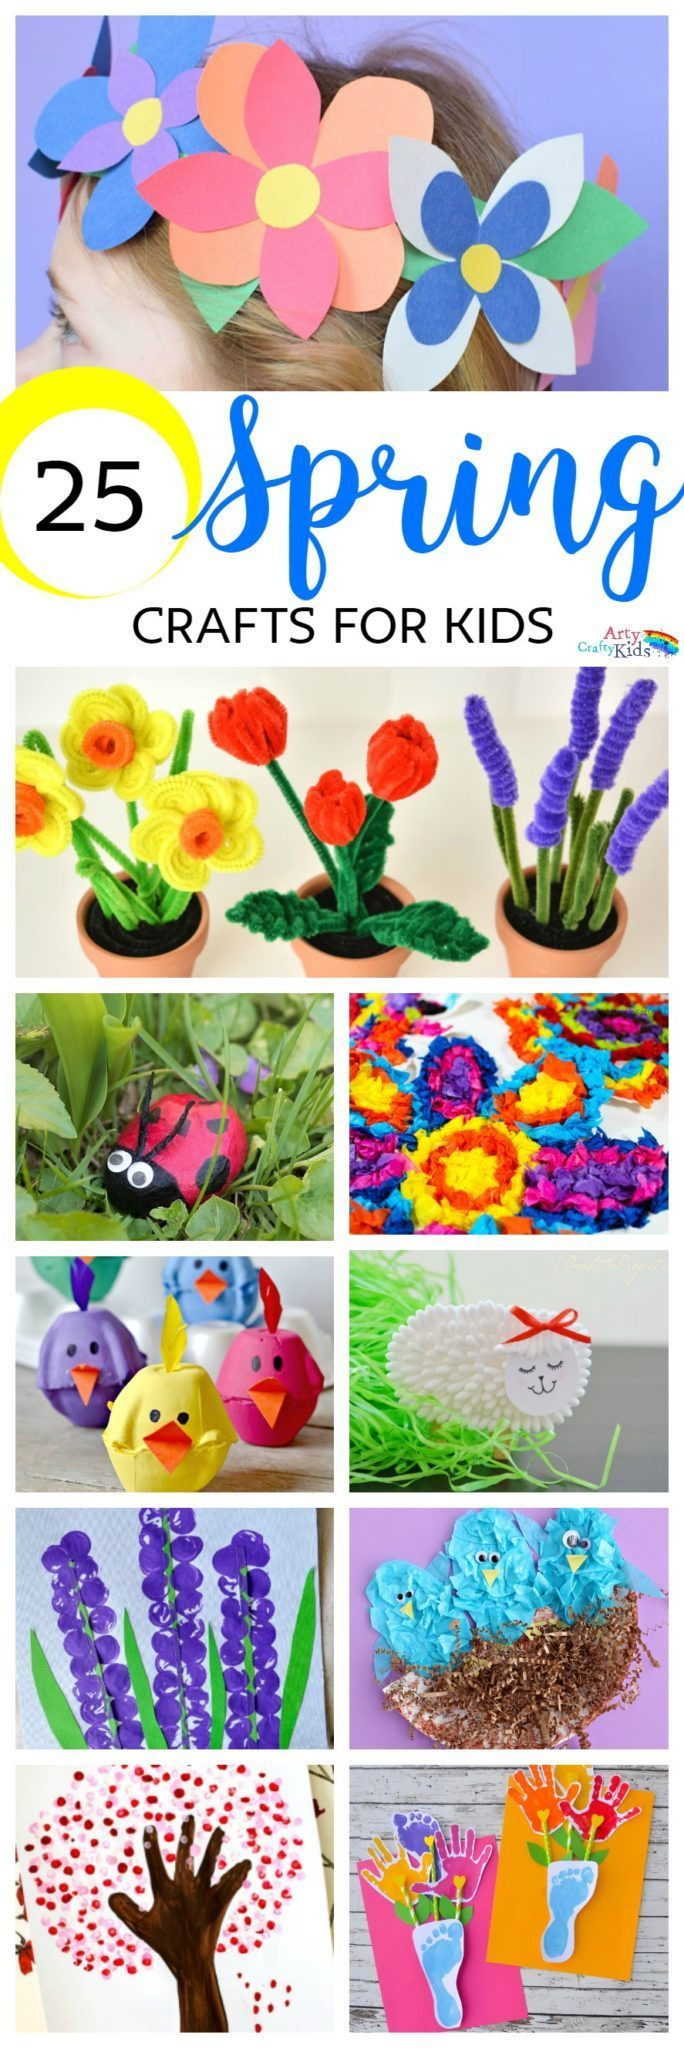 Best ideas about Easy Spring Crafts For Kids . Save or Pin Easy Spring Crafts for Kids Arty Crafty Kids Now.